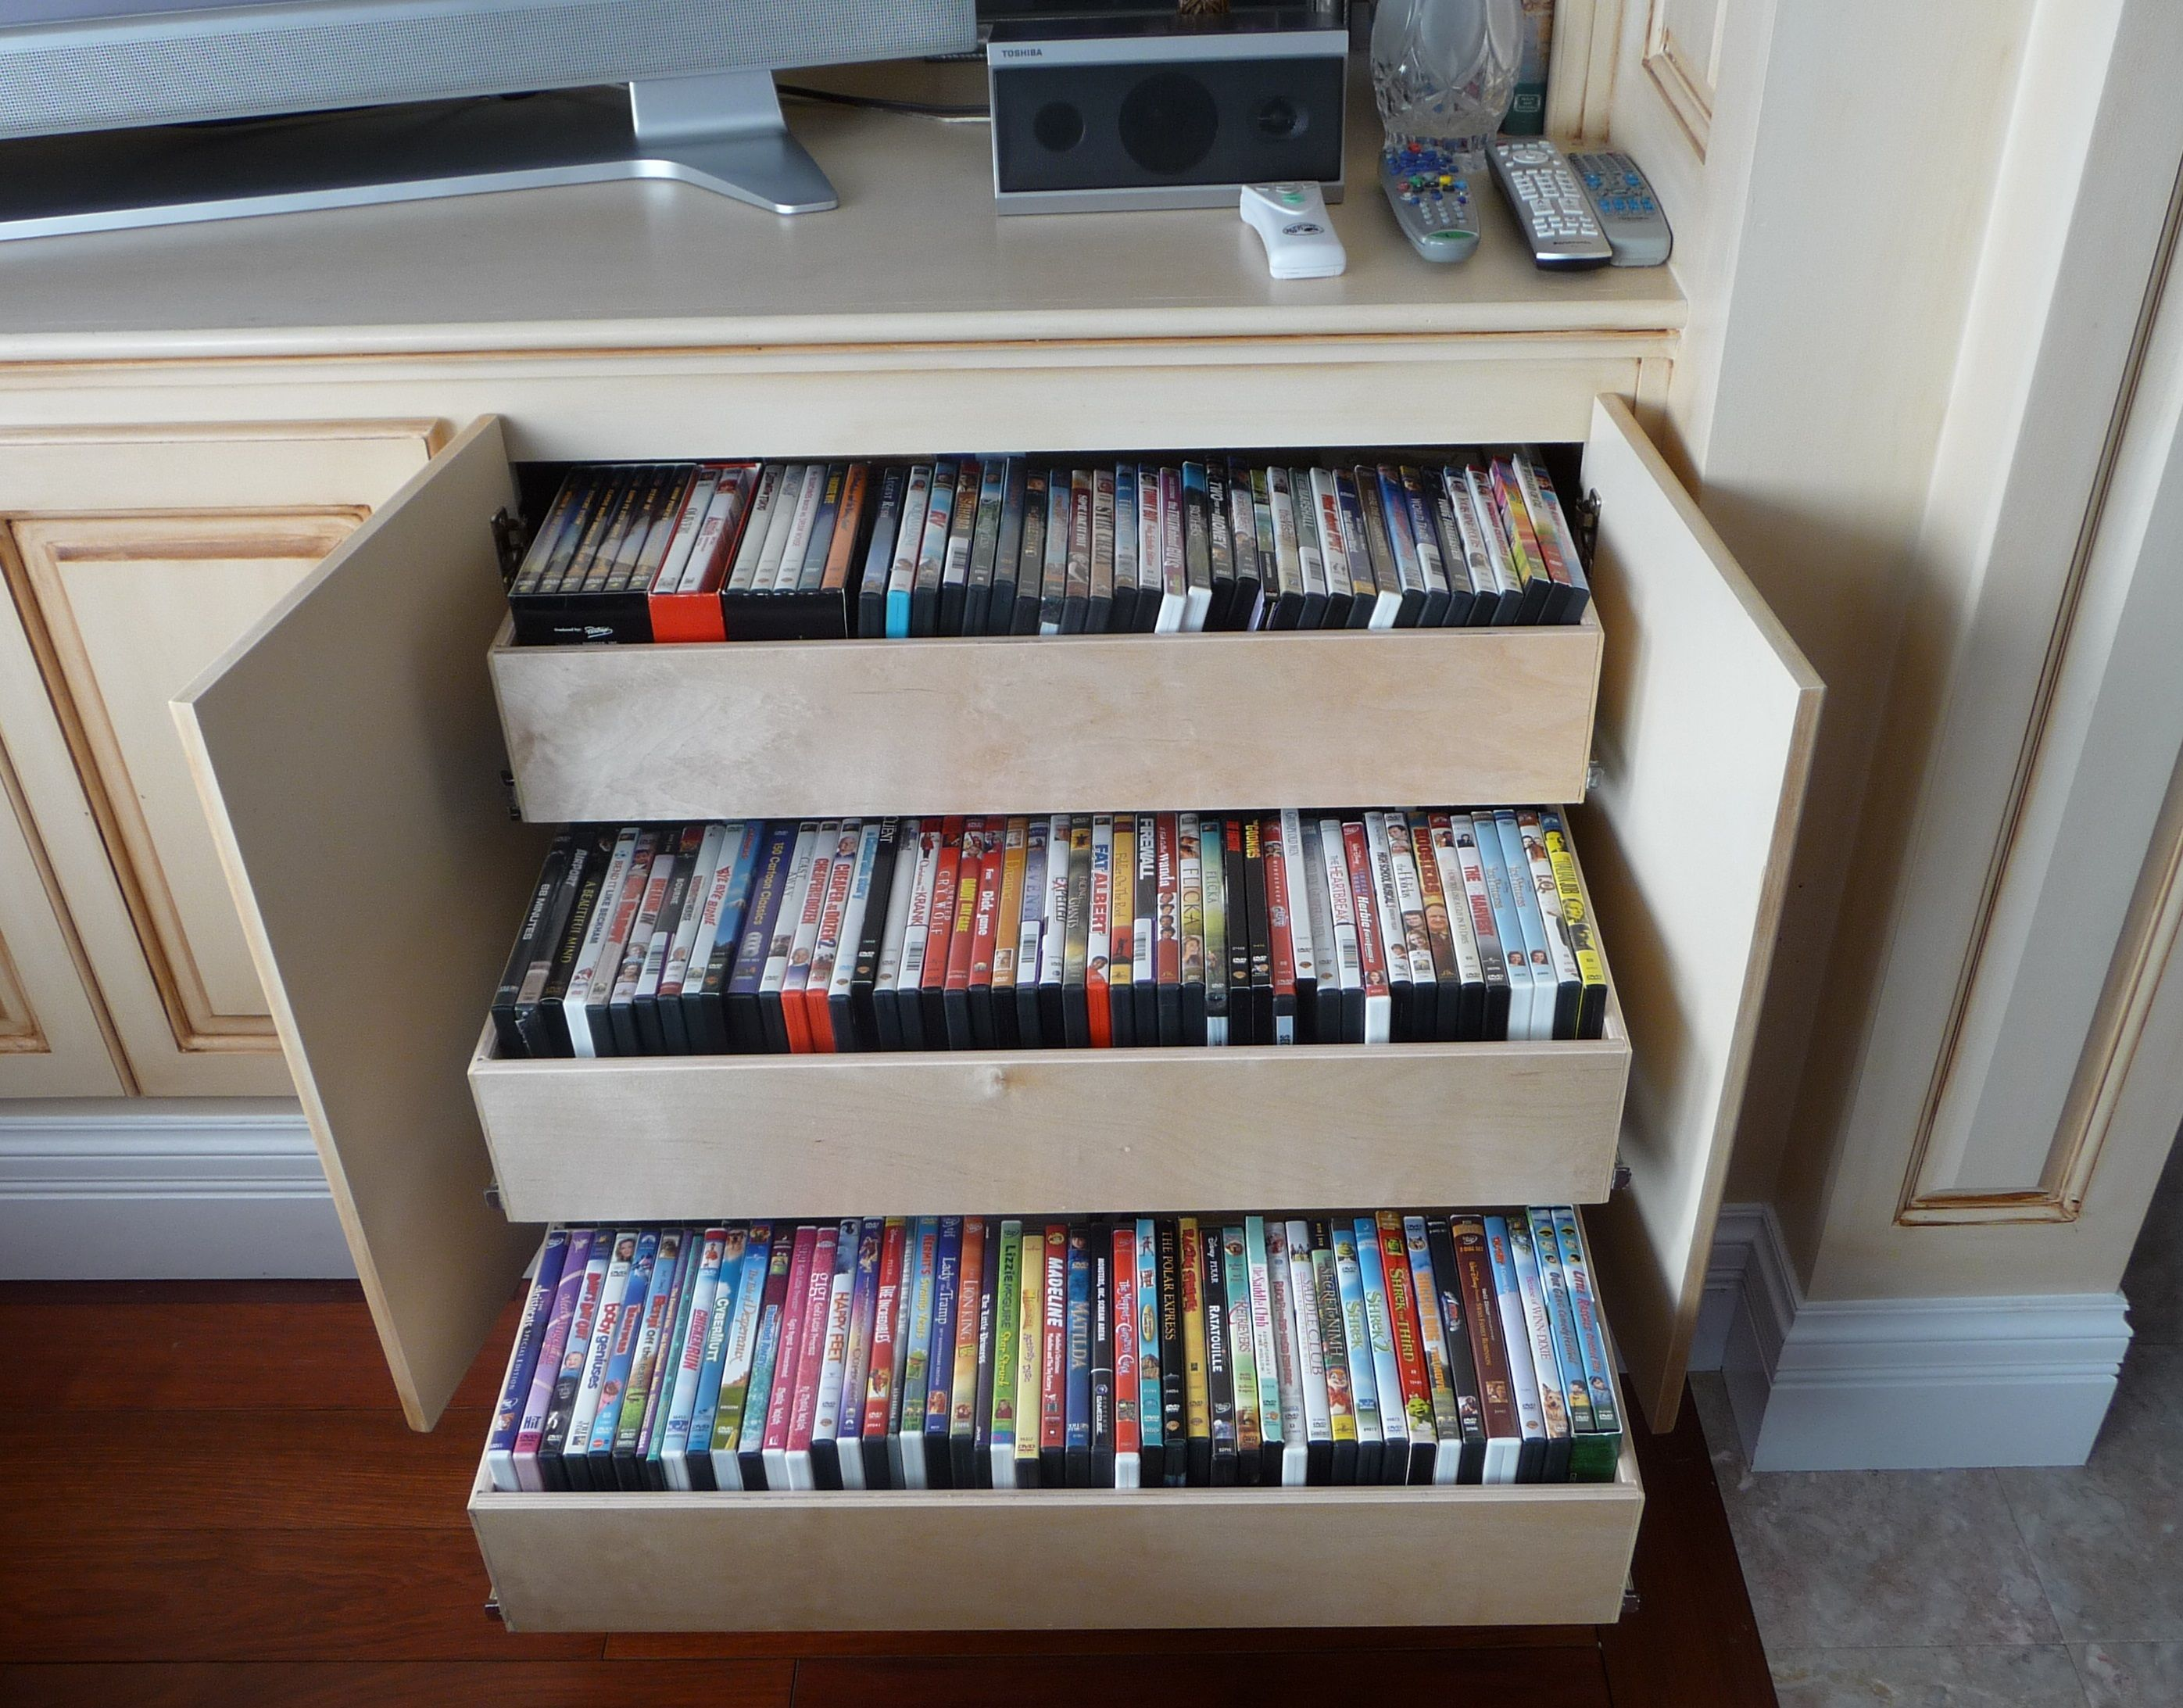 20 Creative Dvd Storage Ideas With Conventional Stuleѕ Diy With Images Diy Dvd Storage